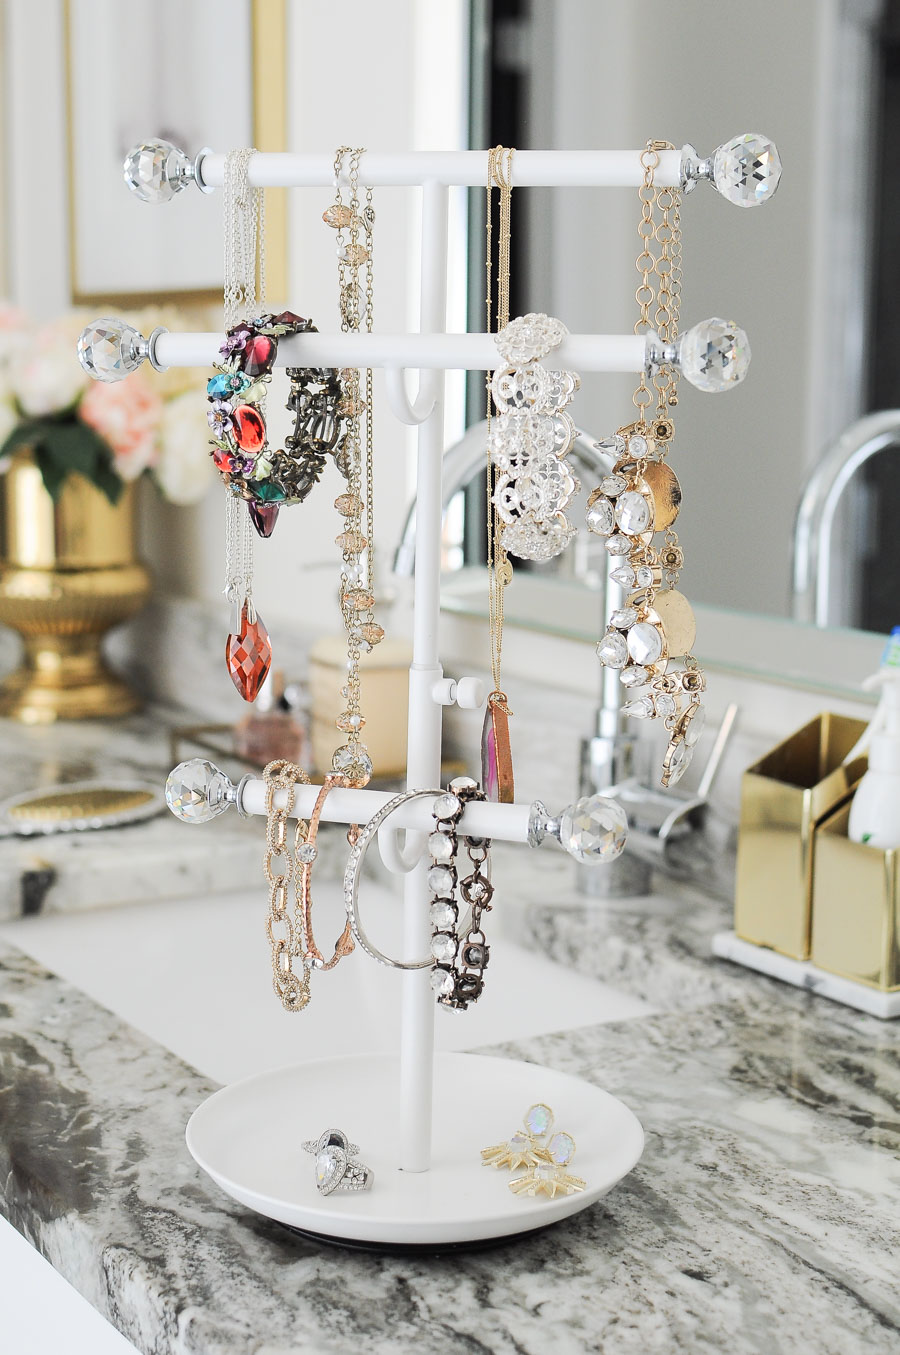 Gorgeous jewelry organization idea for a master bathroom vanity! Perfect countertop decor that is functional and gorgeous.